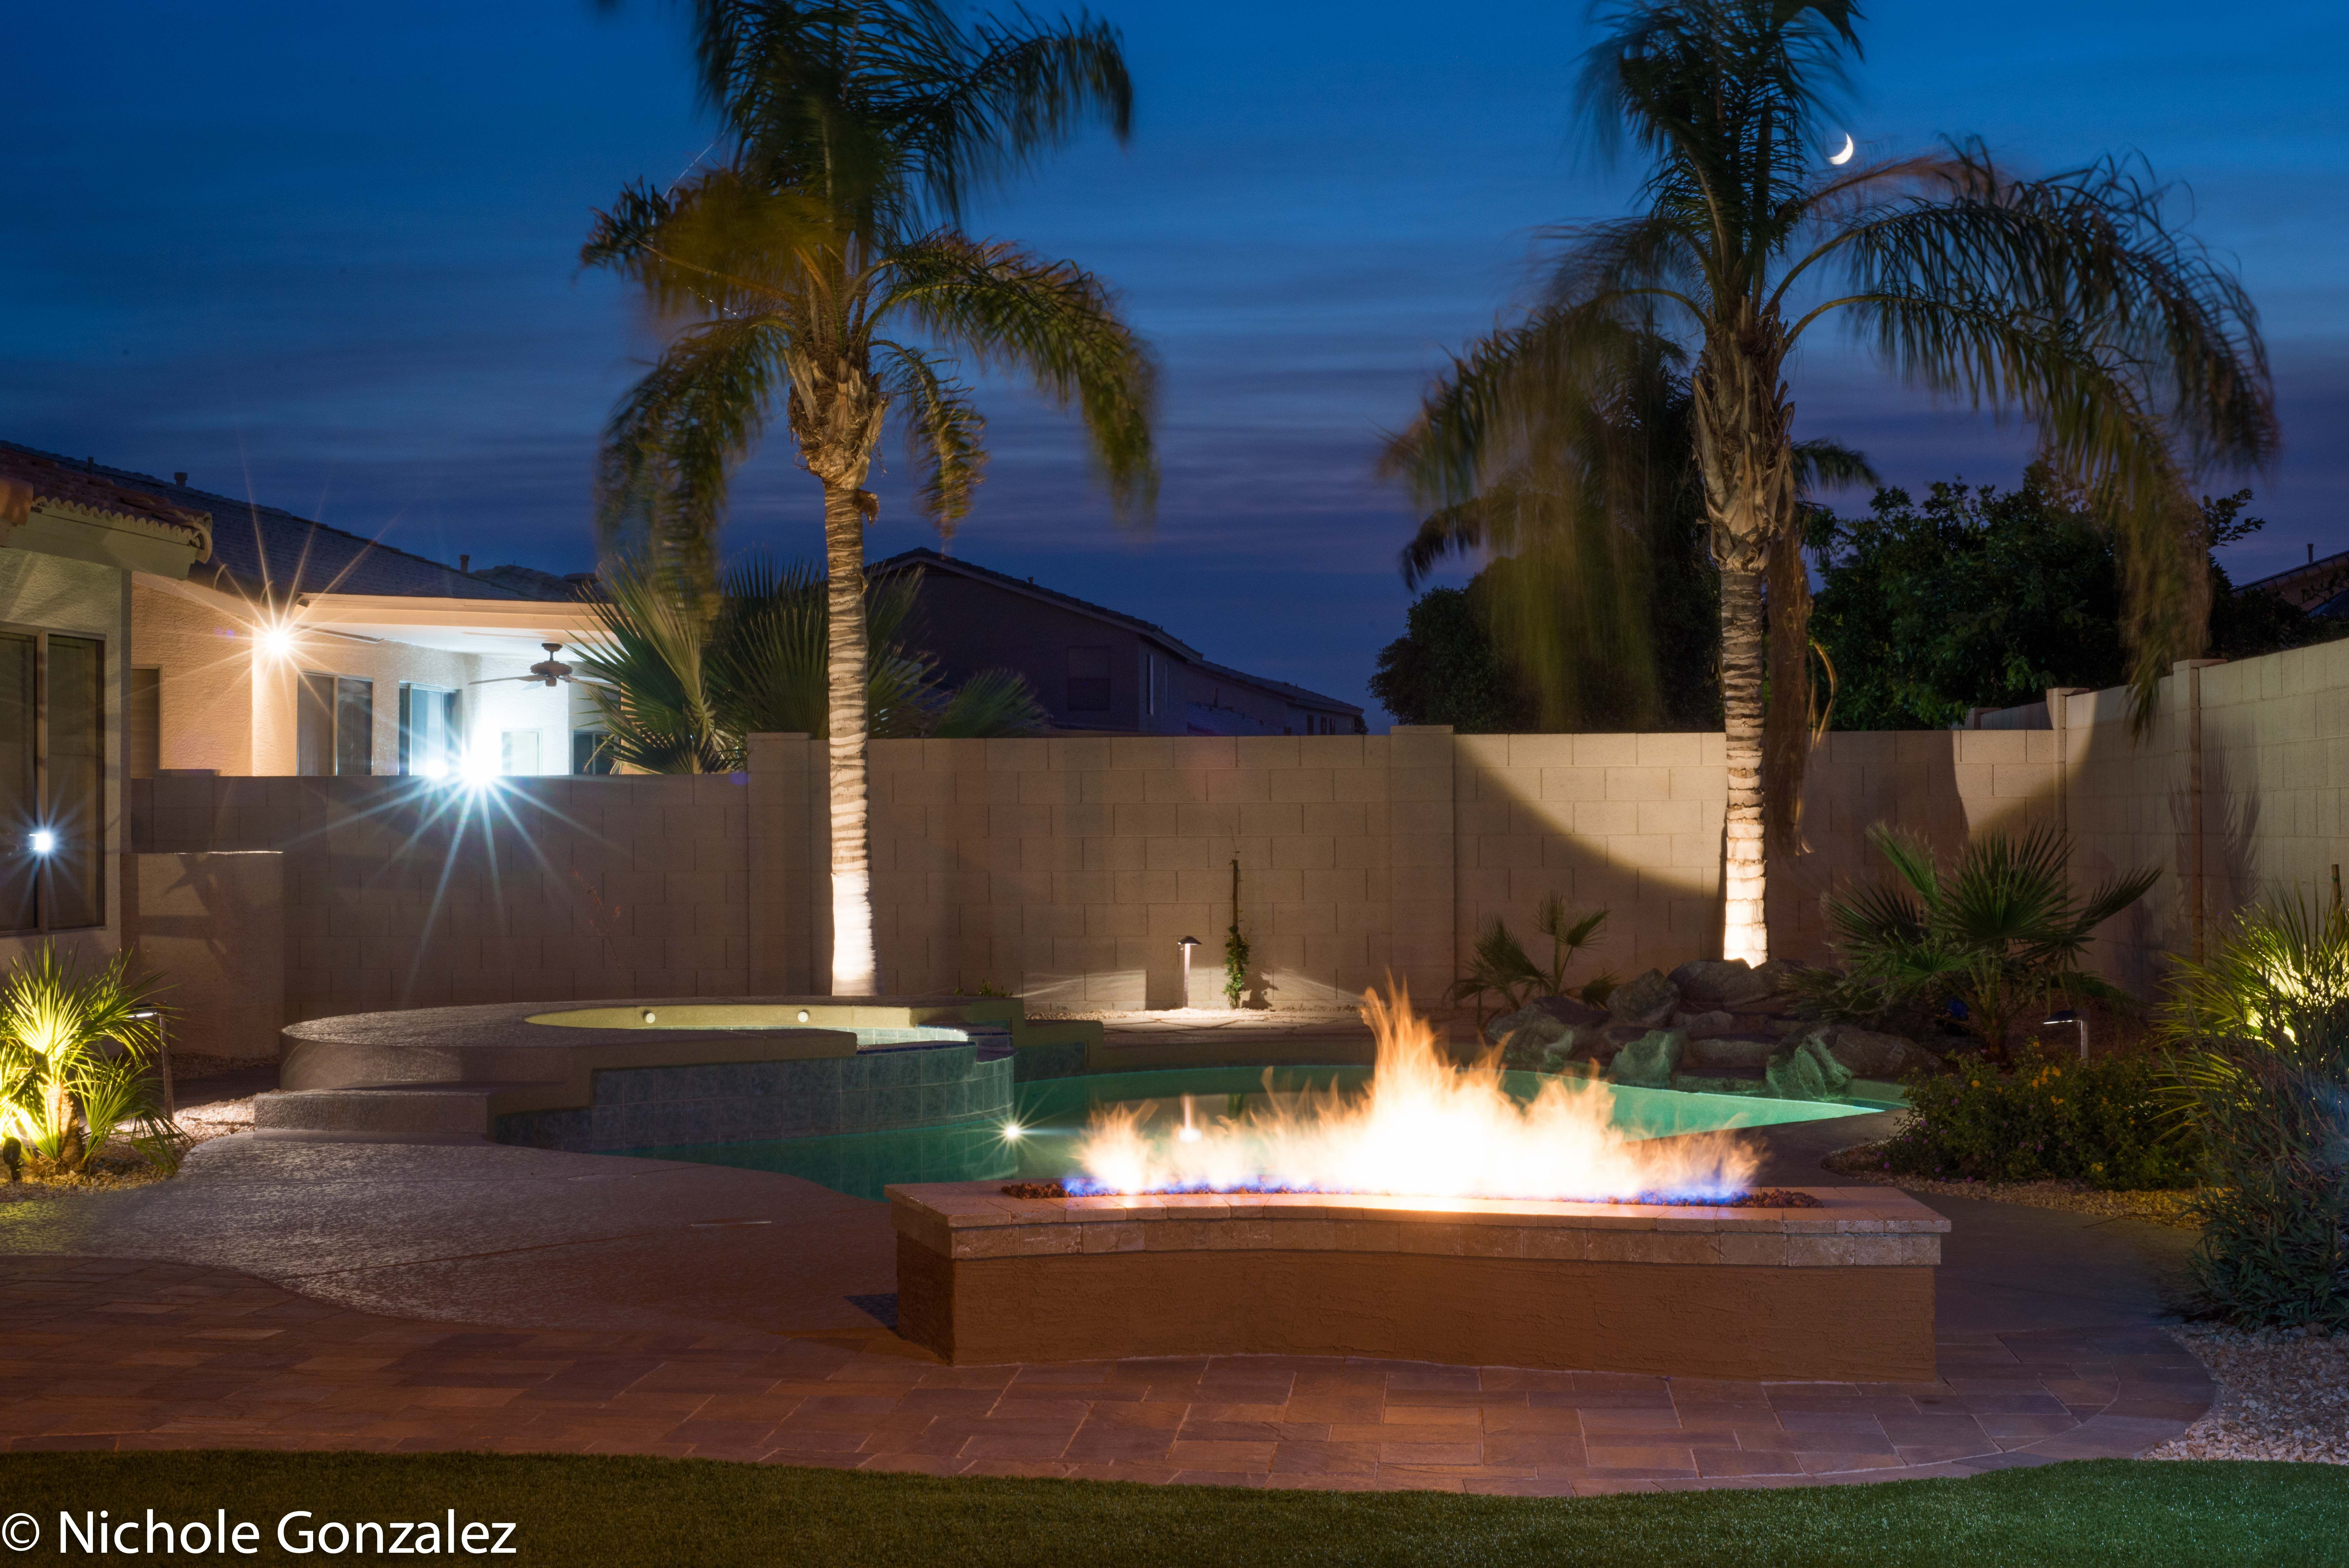 Final Fire Pit And Pool Deck From My 2015 Backyard Makeover